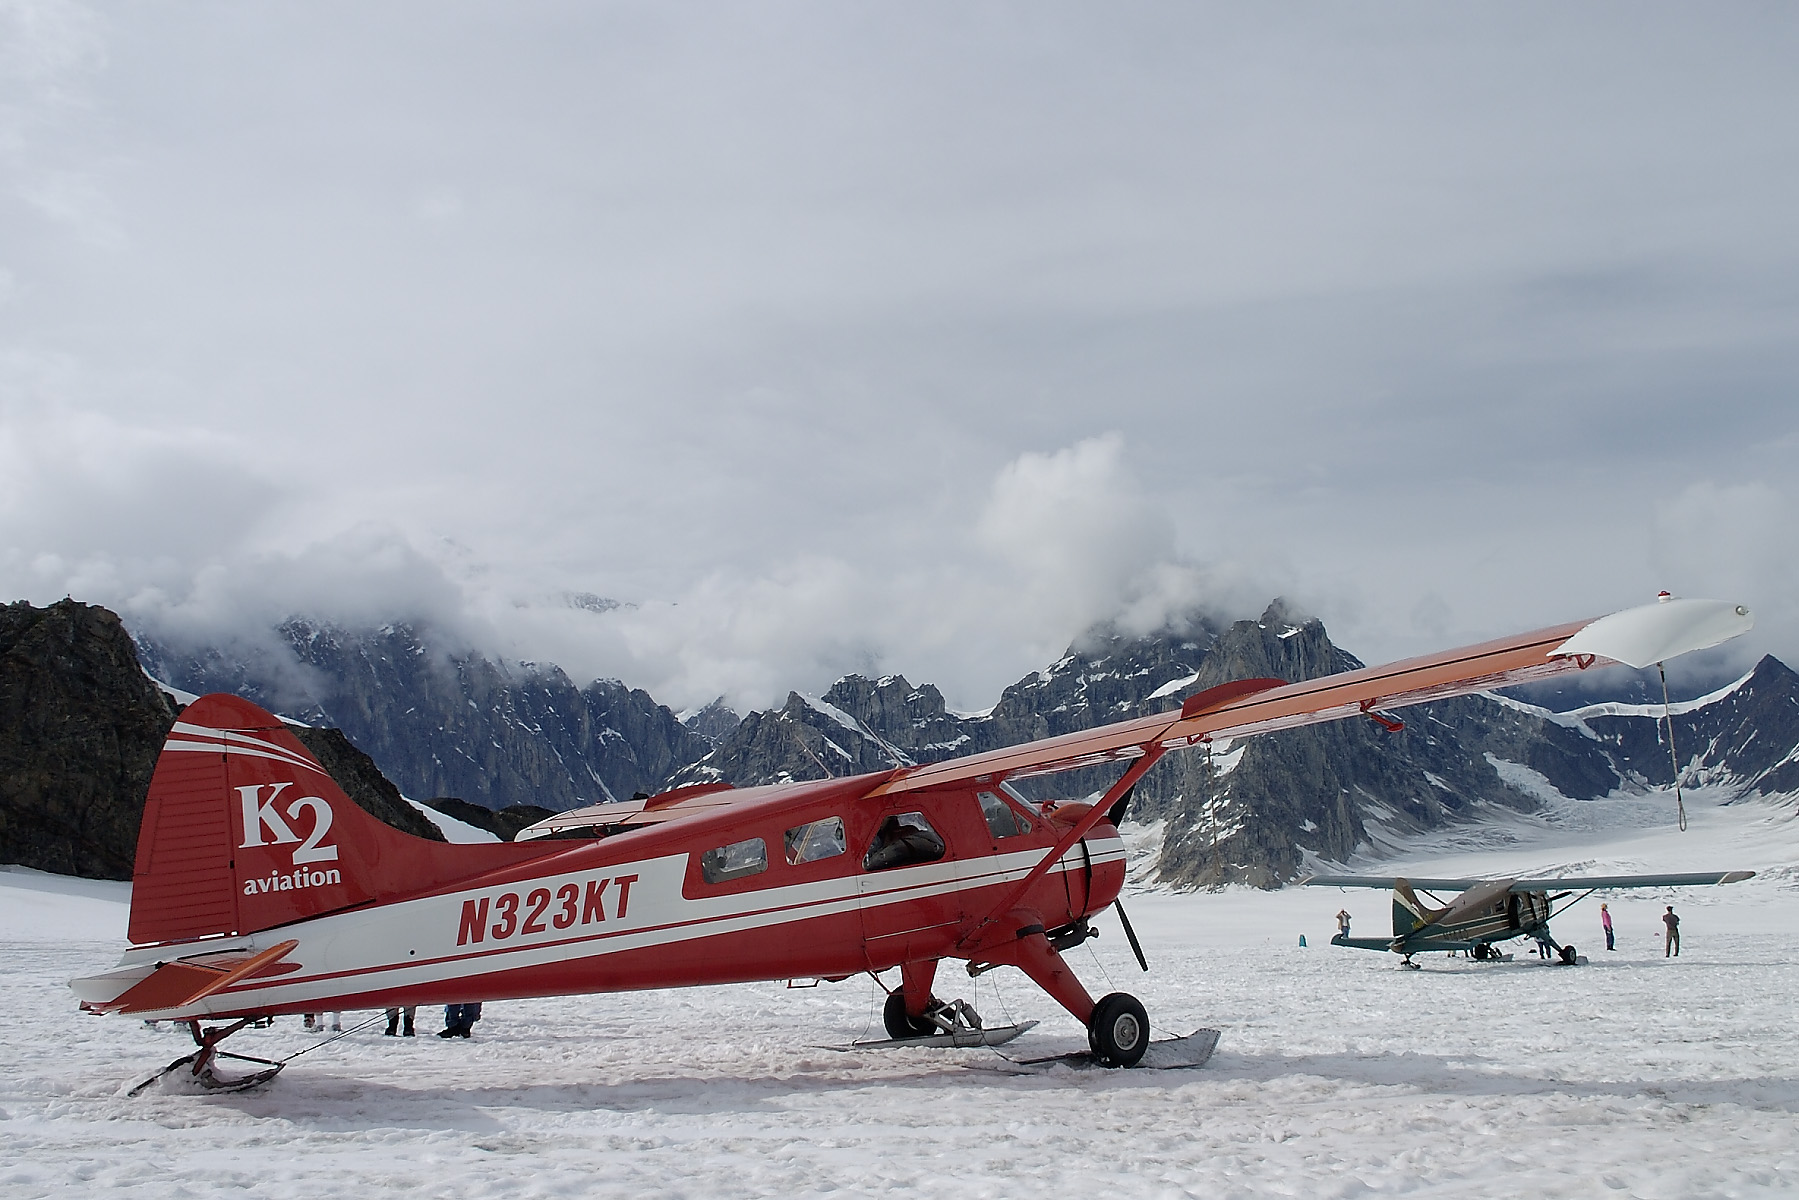 When we arrived in Talkeetna, we had the opportunity to take a flight seeing tour onto a glacier.